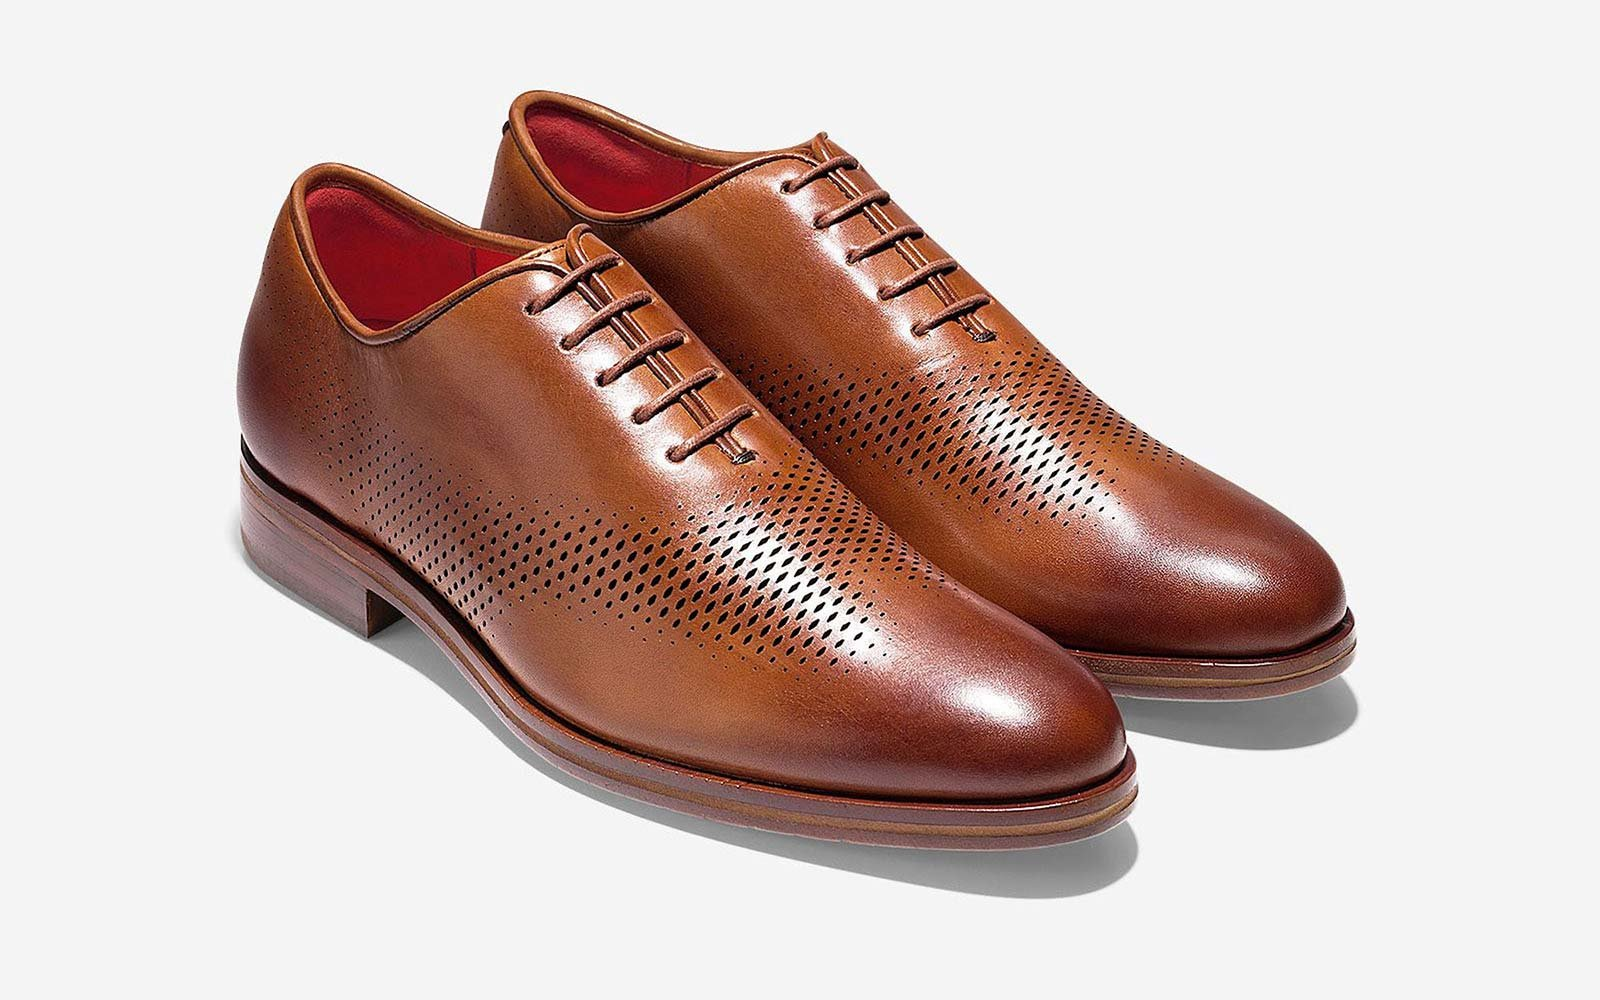 Best Loafer Dress Shoes